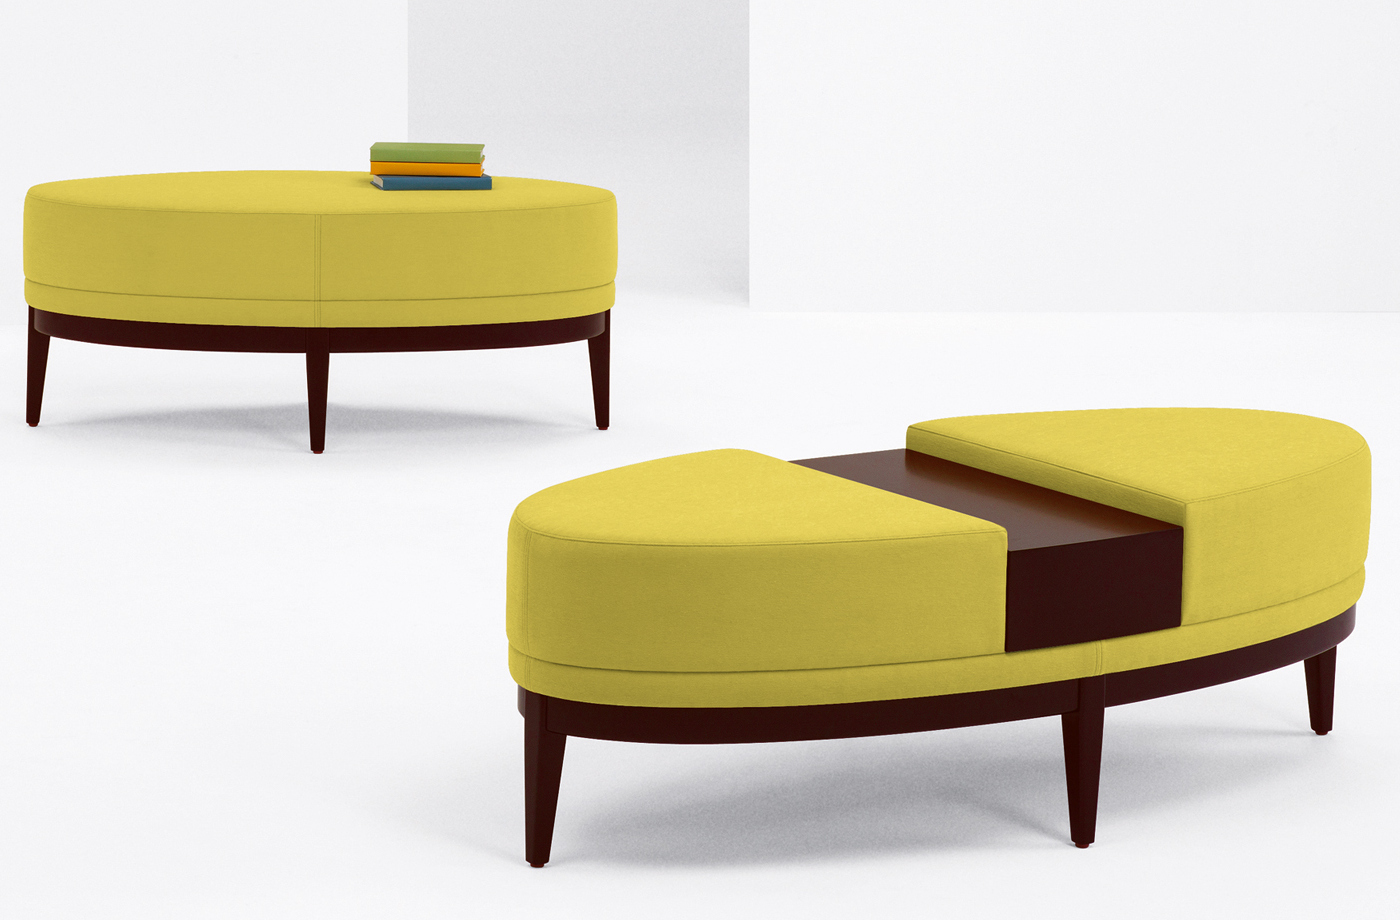 ARCADIA Ovate Benches 1  http://www.arcadiacontract.com/products/details.php?id=5321